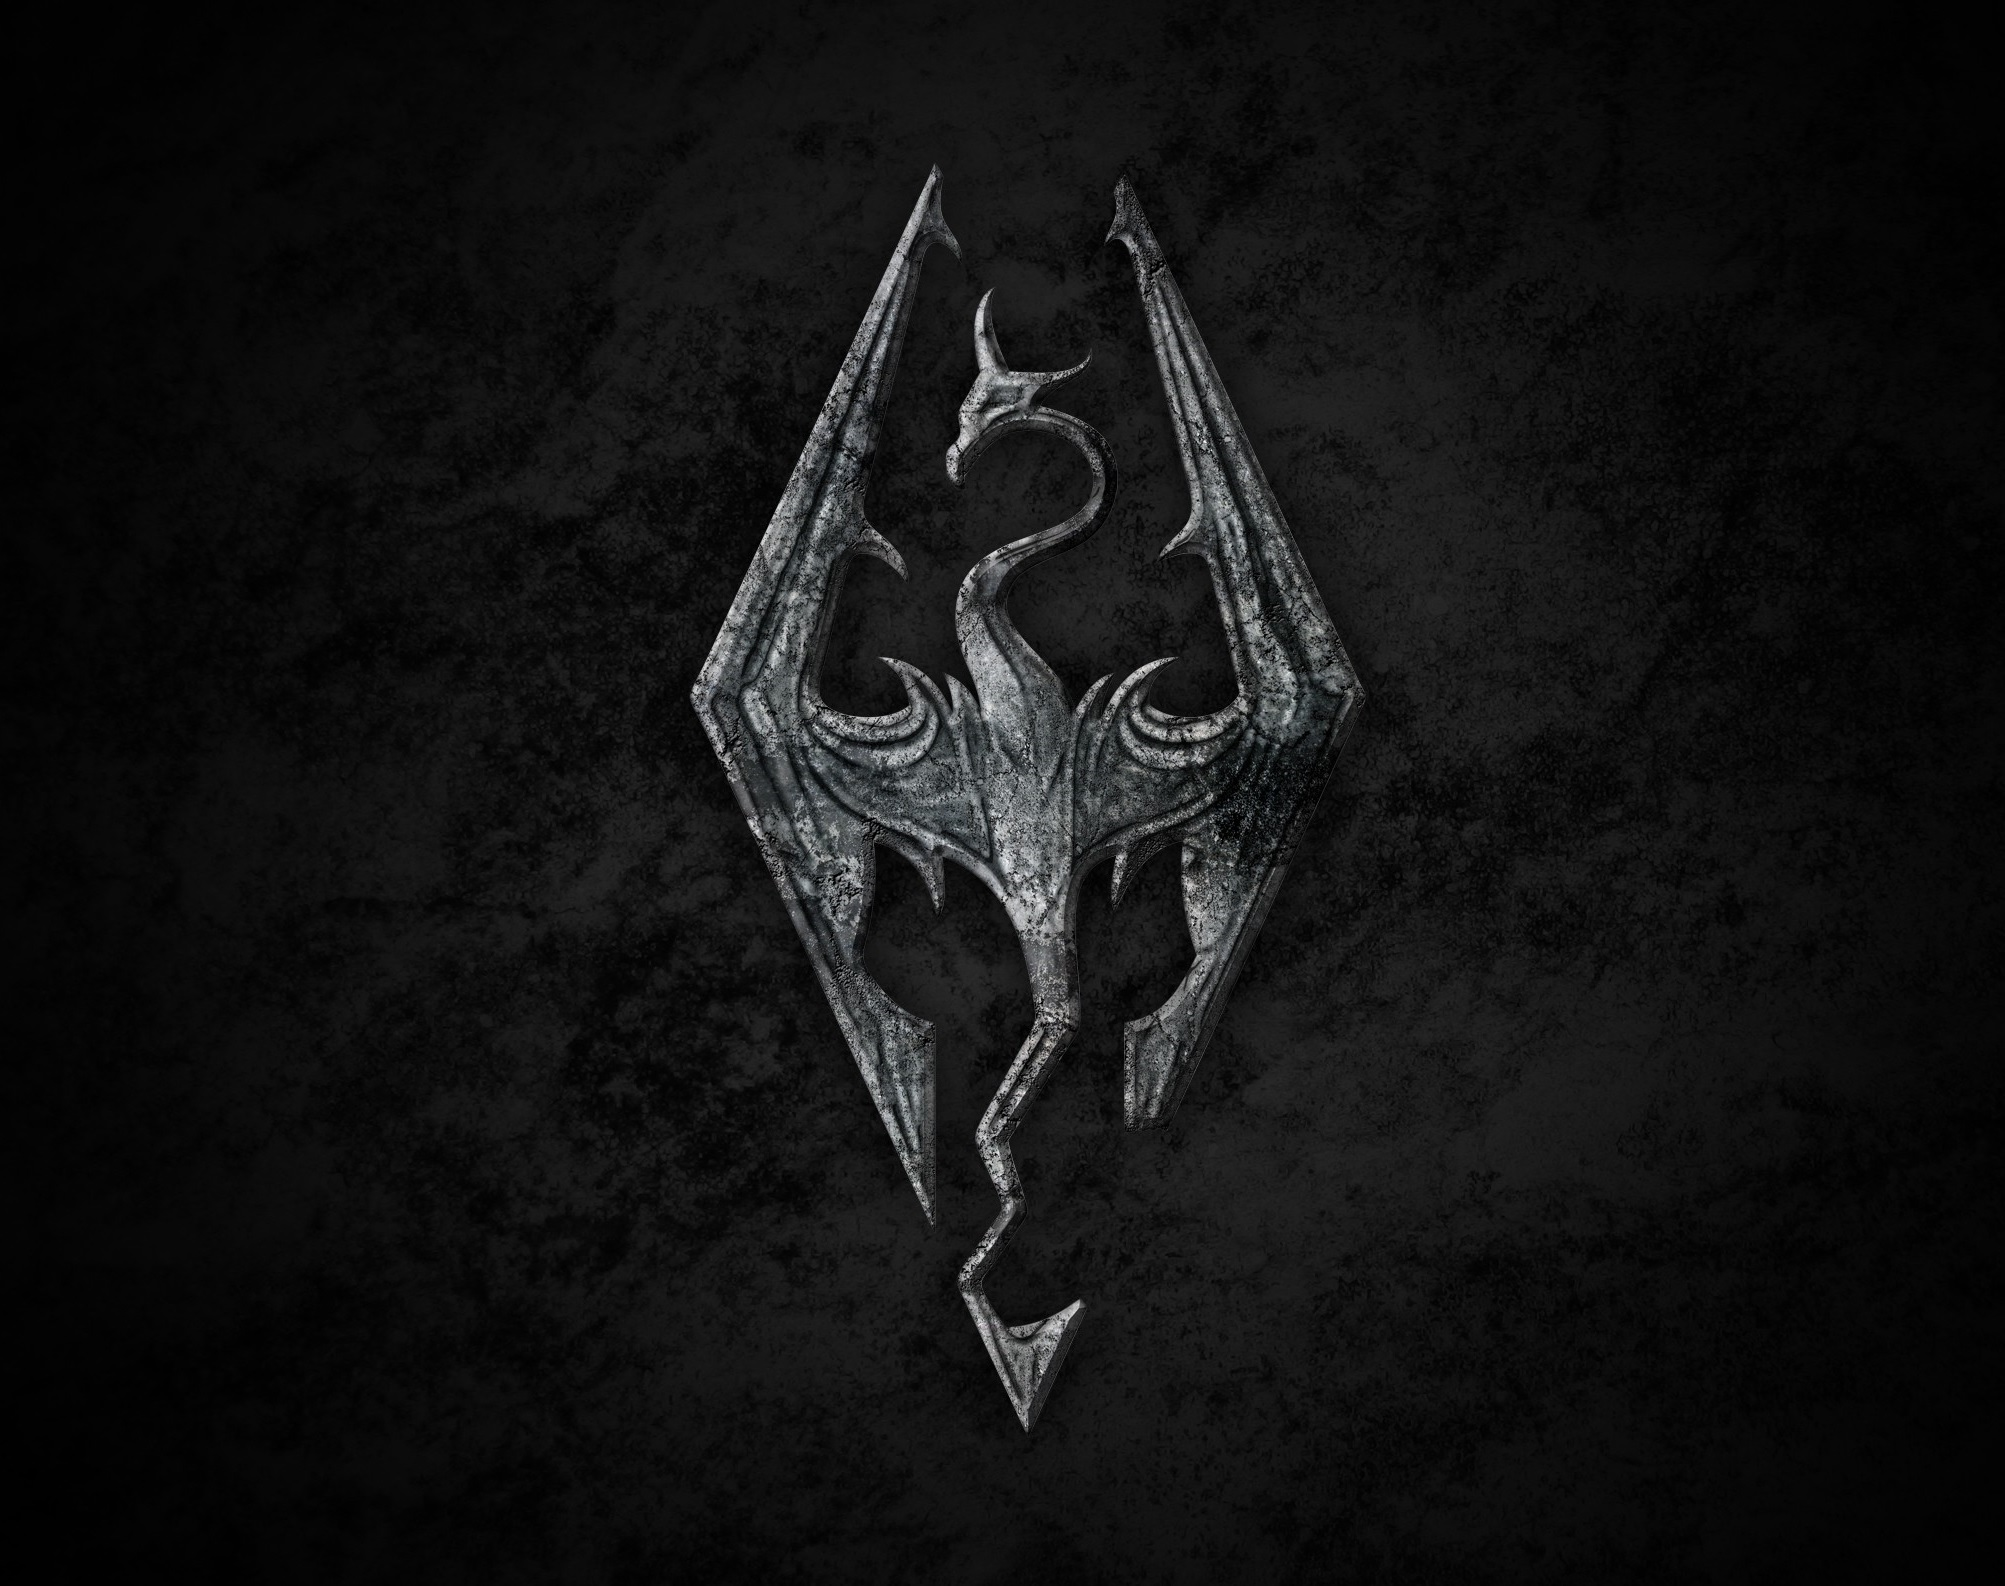 The Elder Scrolls V: Skyrim – Even an Arrow in the Knee Won't Stop It